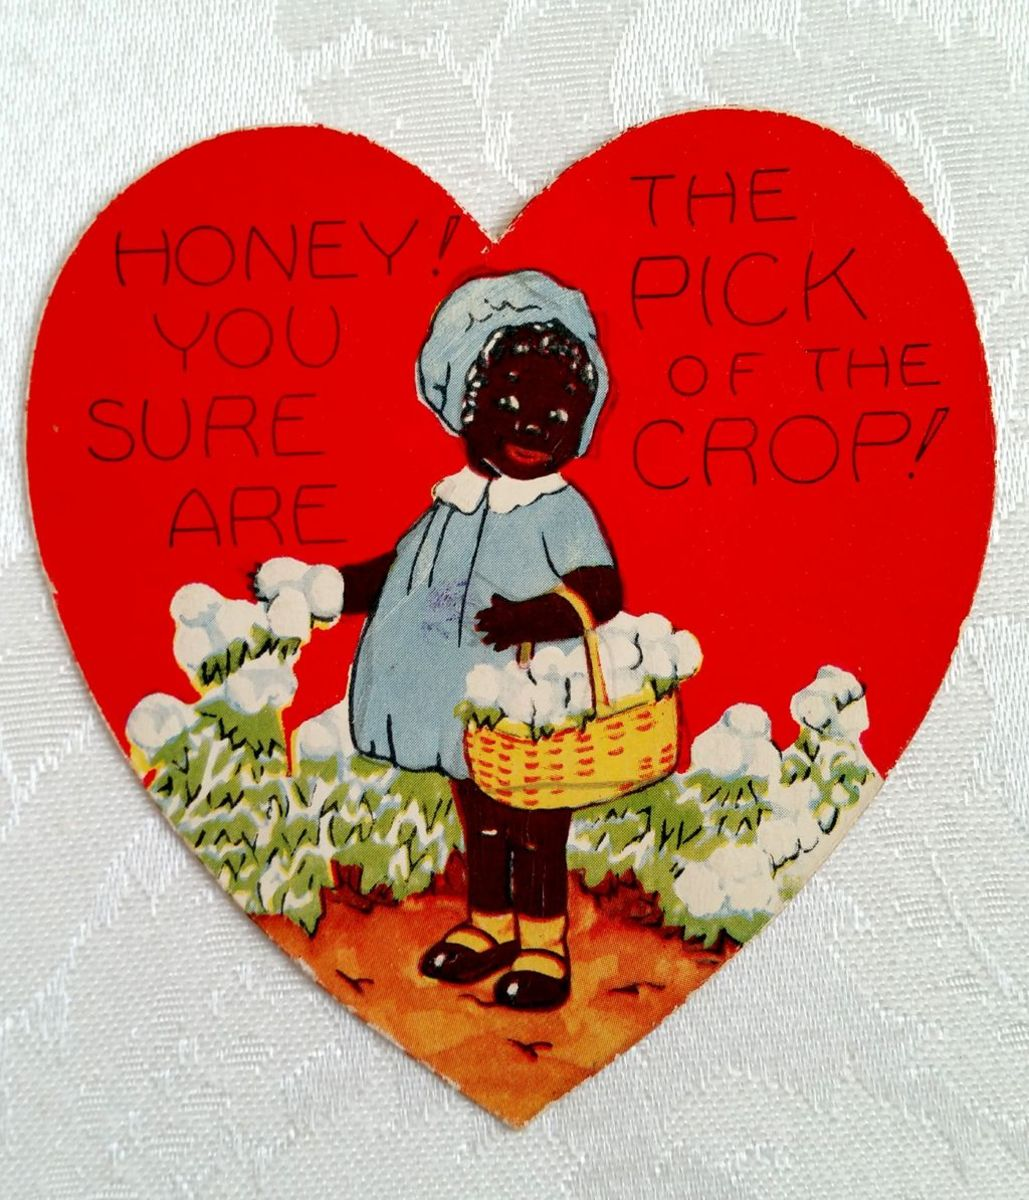 Dated 1935. Cute graphic, but I'm sure the cotton picking theme which harkens back to slavery days make this totally unacceptable.